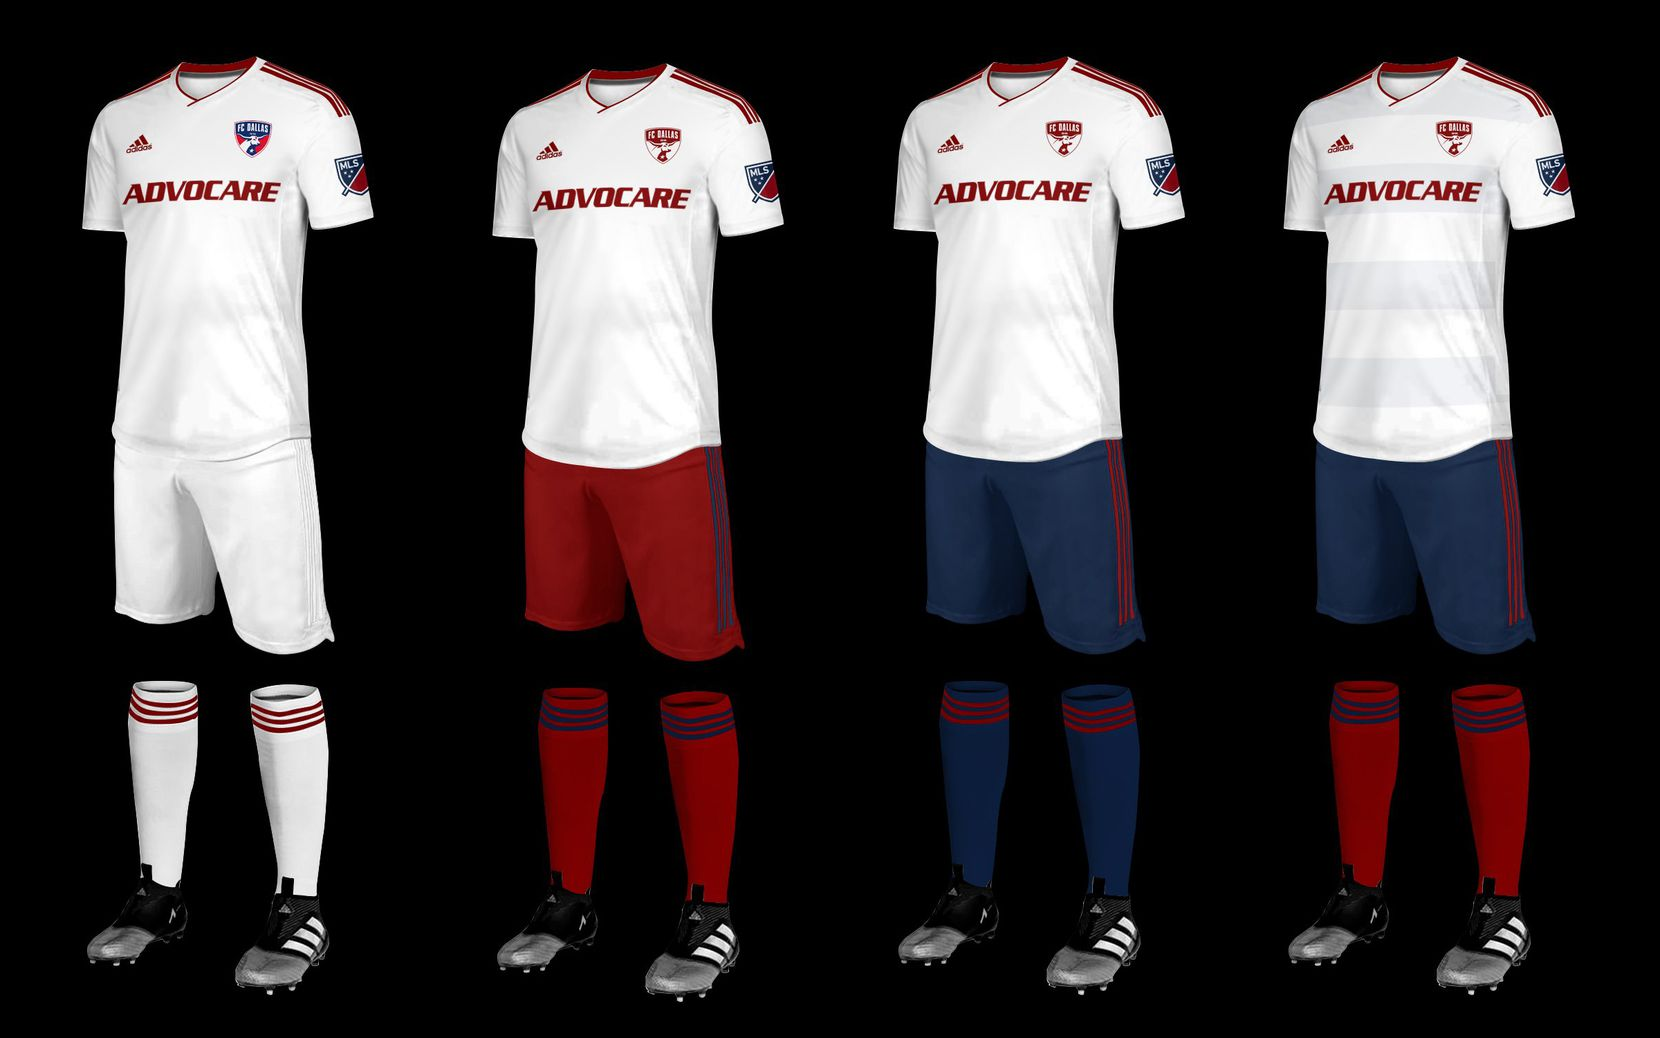 Peter Welpton's classic combo kit concept for 2019 FC Dallas secondary kits.